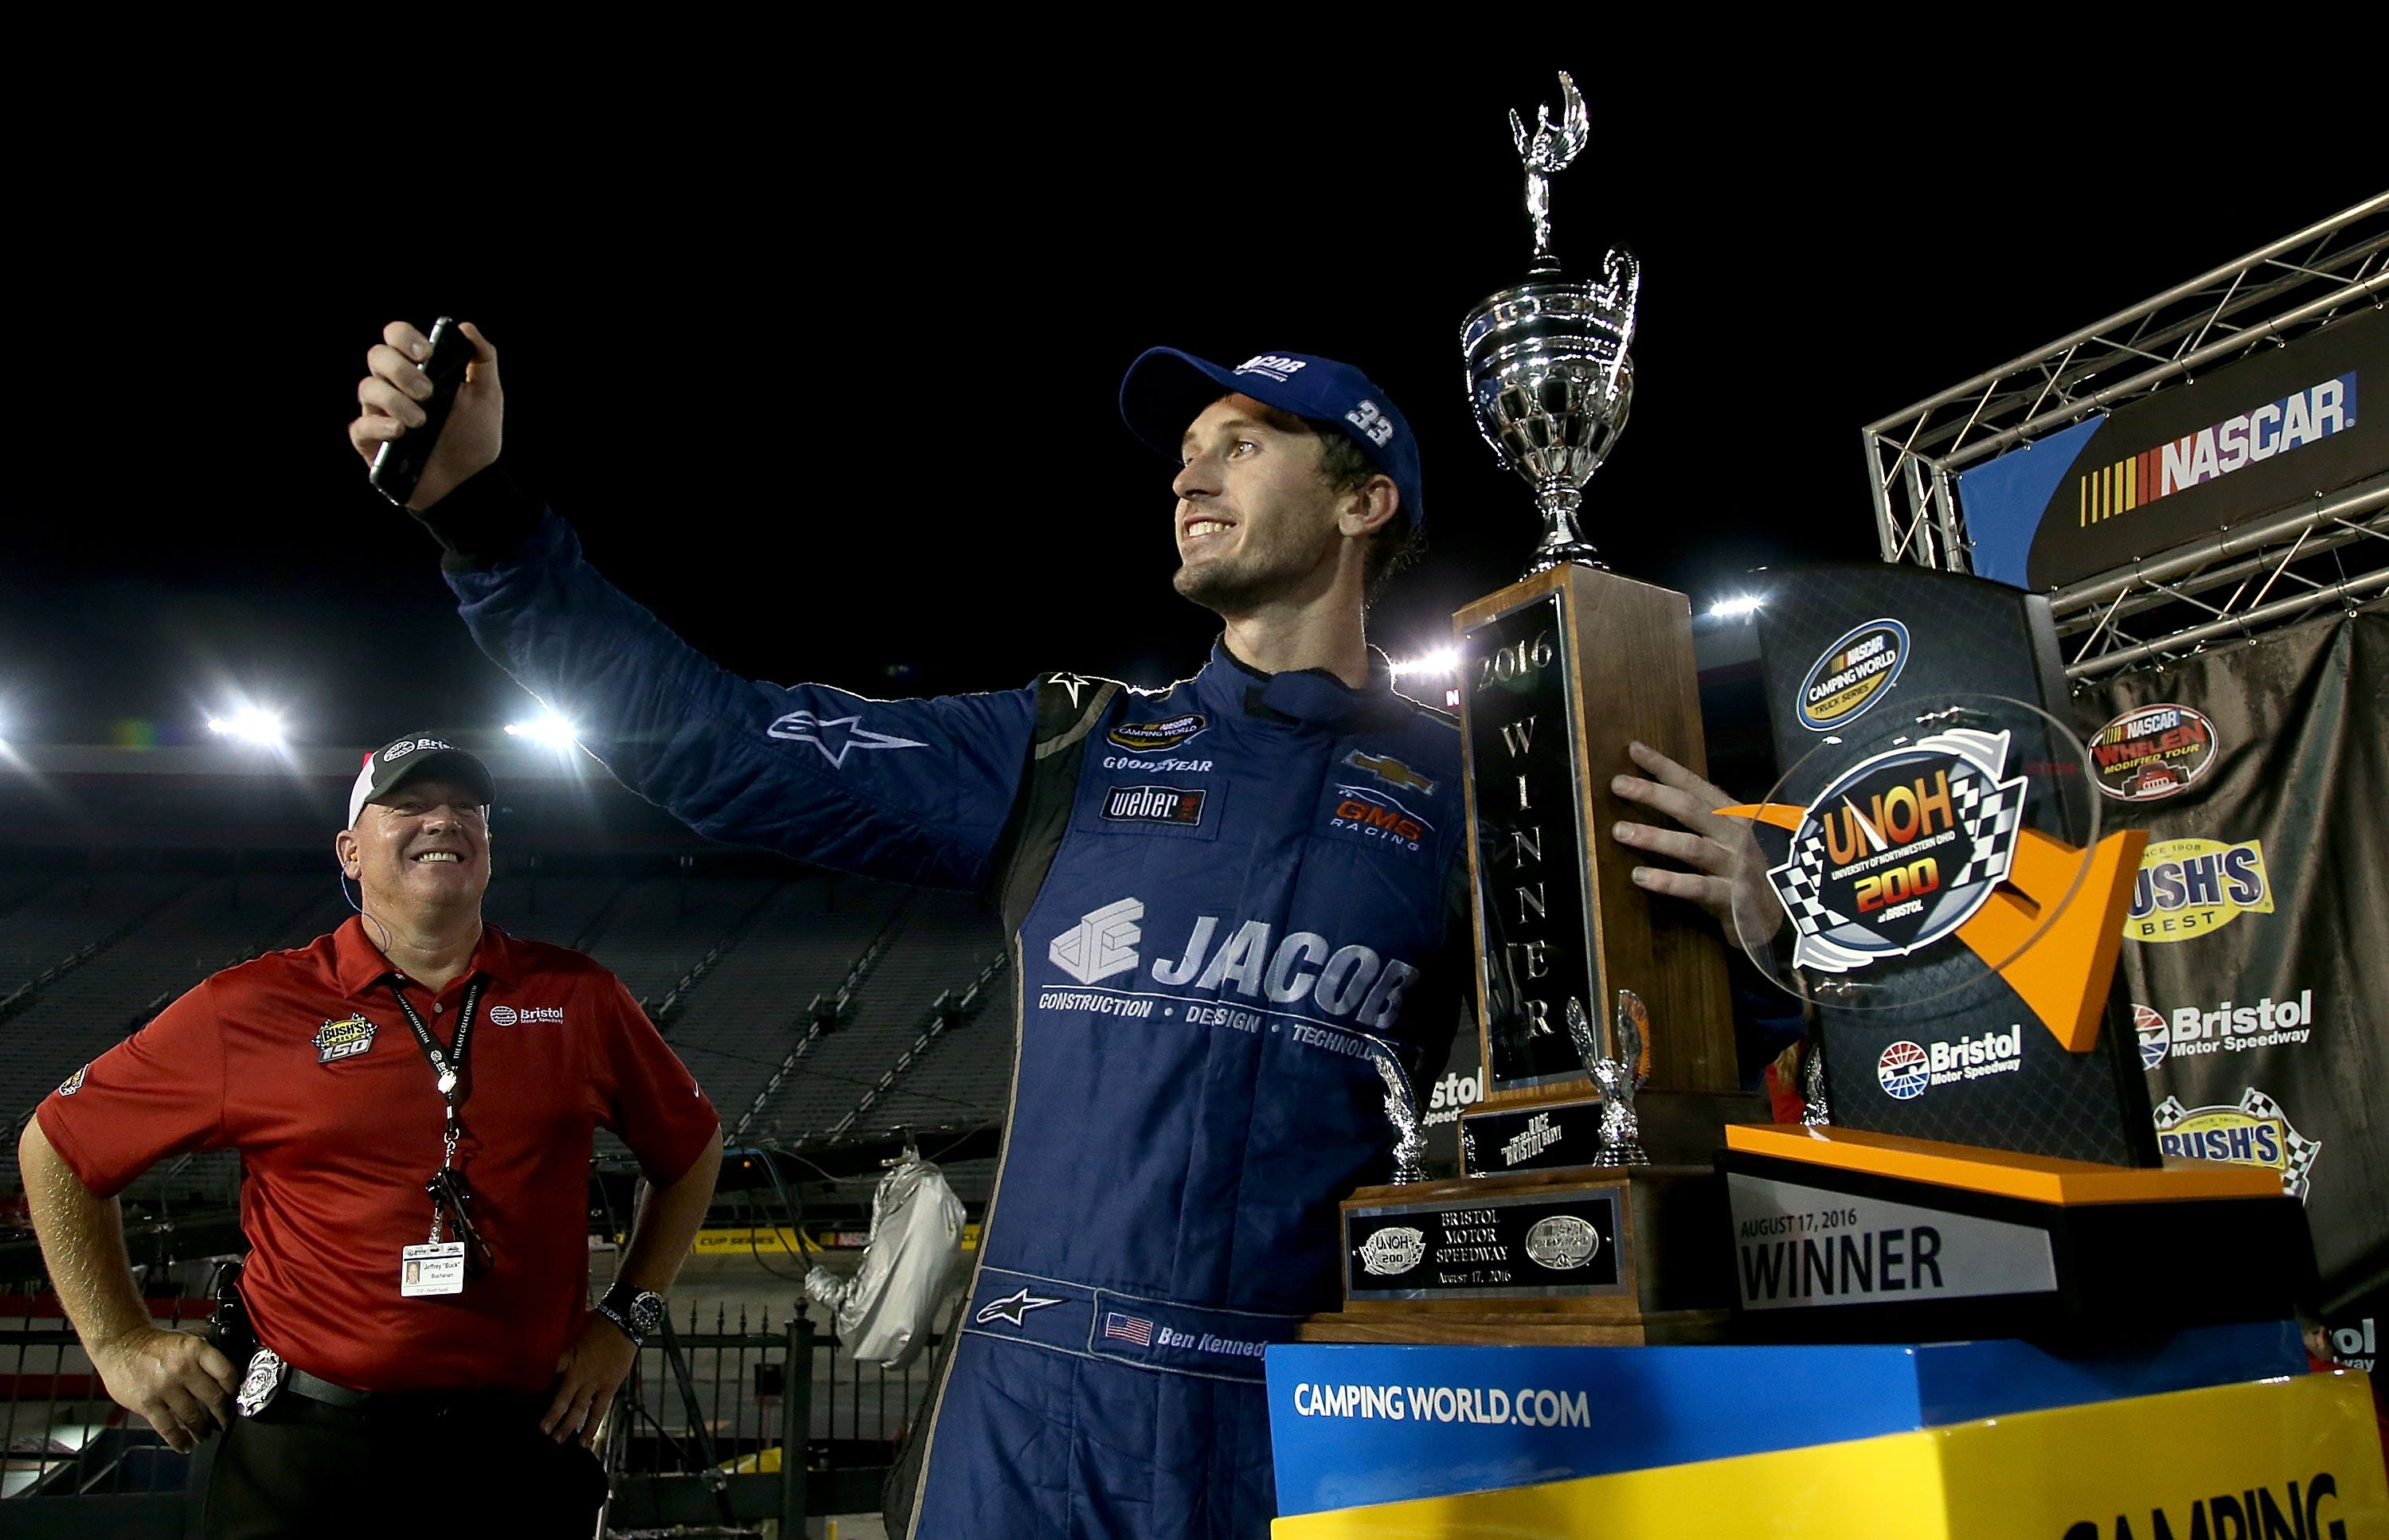 Ben Kennedy wins at Bristol Motor Speedway